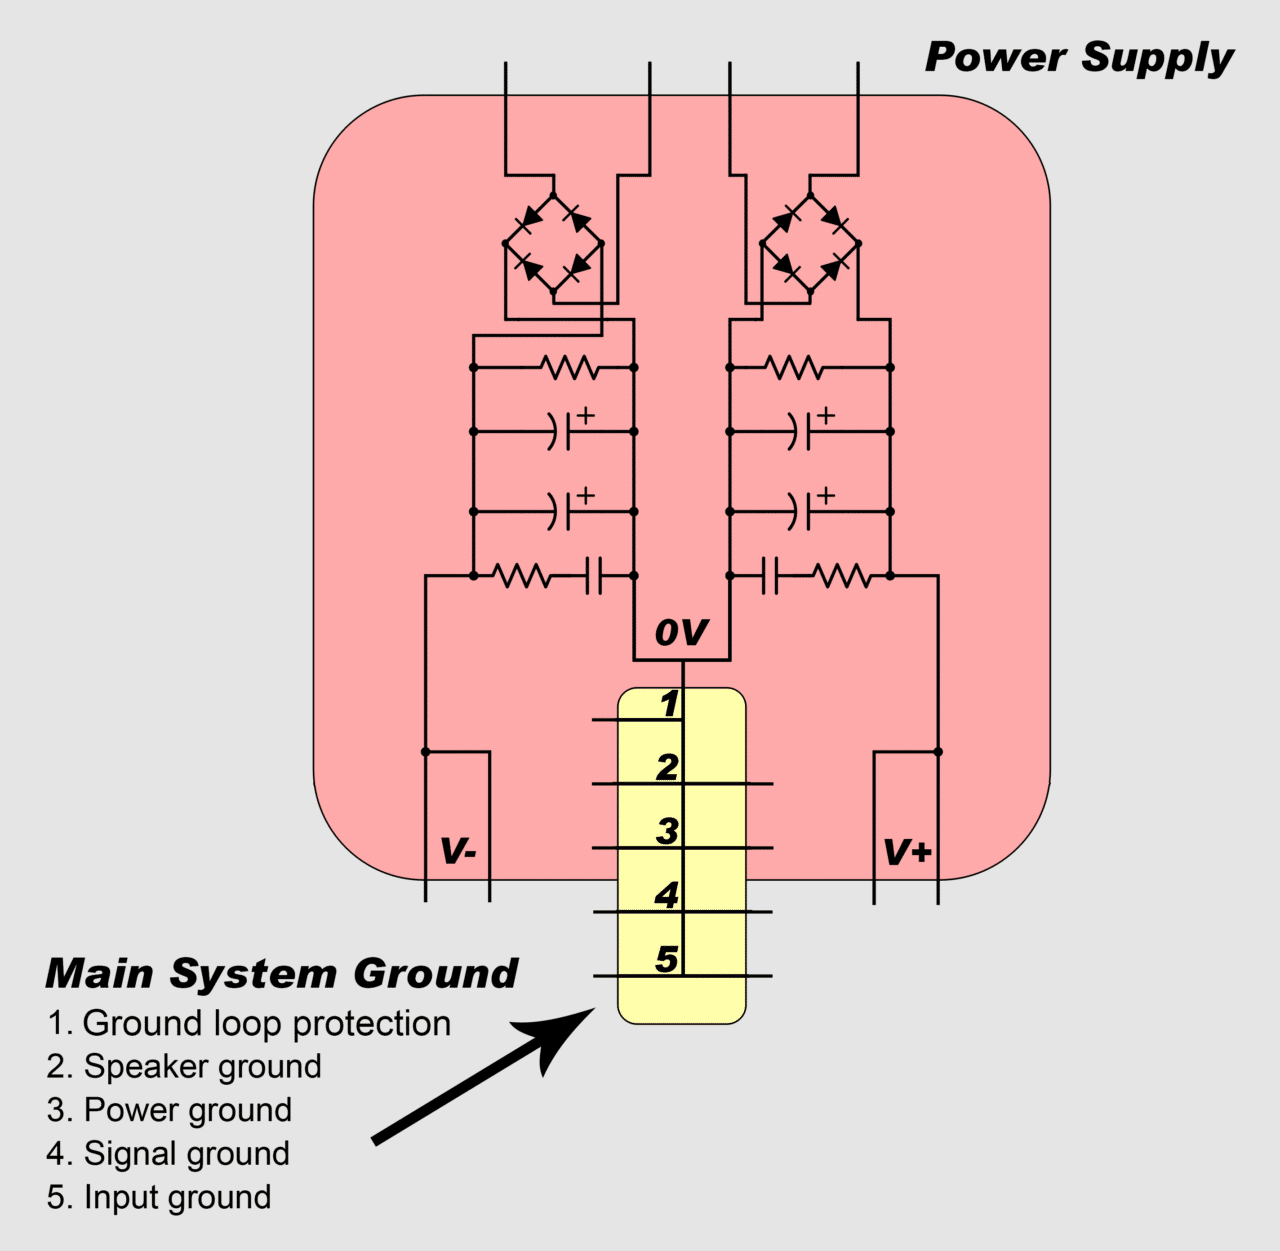 hight resolution of the ground networks are connected to the main system ground in a particular order so that high currents only flow through the low current grounds for a very